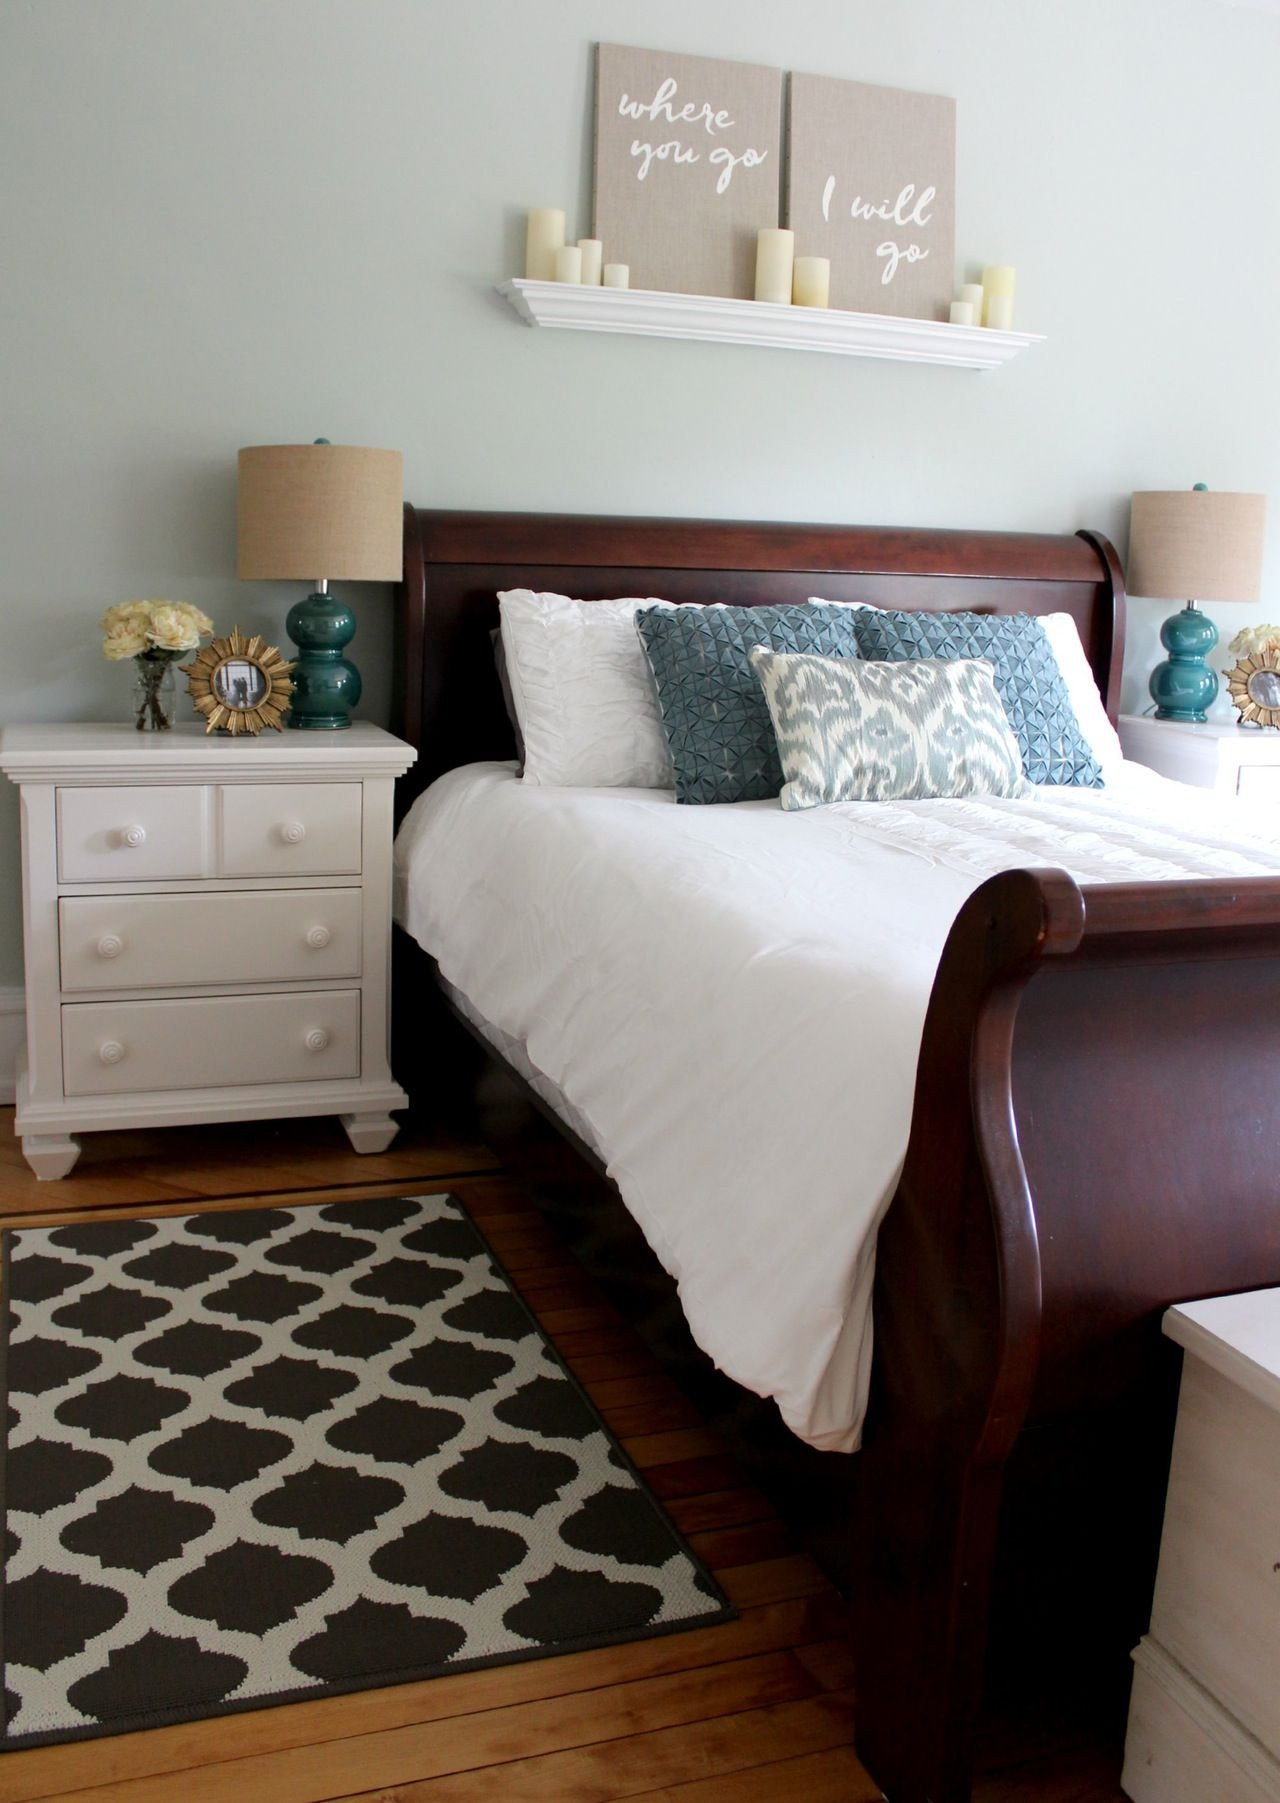 The Dump Bedroom Set Unique Modern Farmhouse Vibes In A Historic Home In Pennsylvania